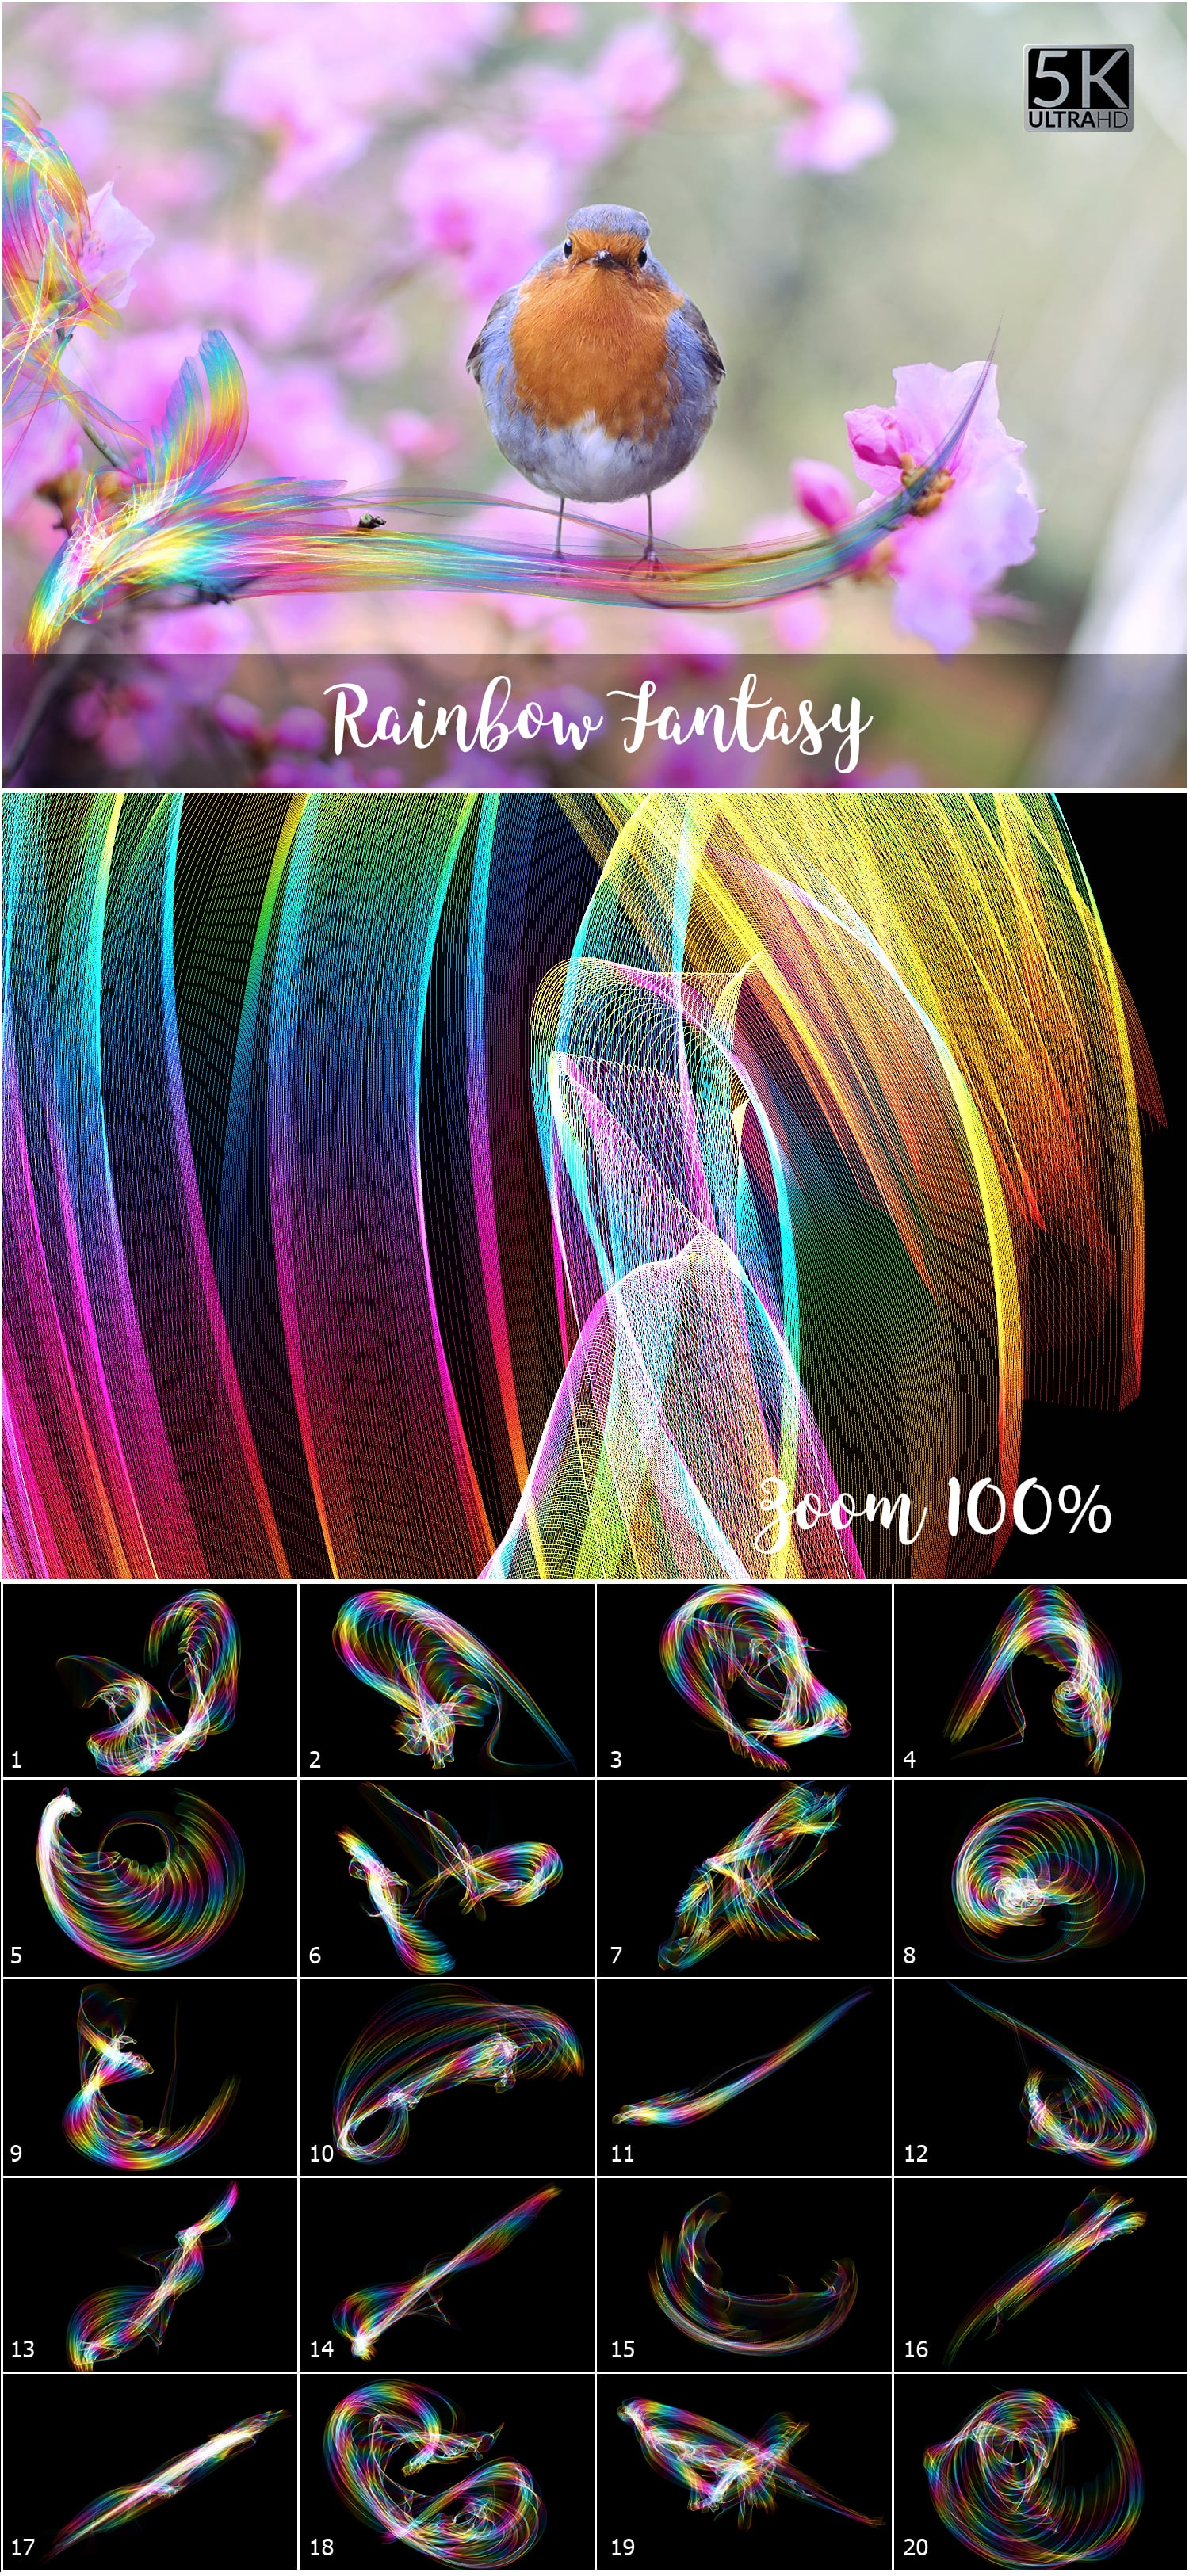 1053 Spectacular Overlays png - Only $18! - Rainbow Fantasy